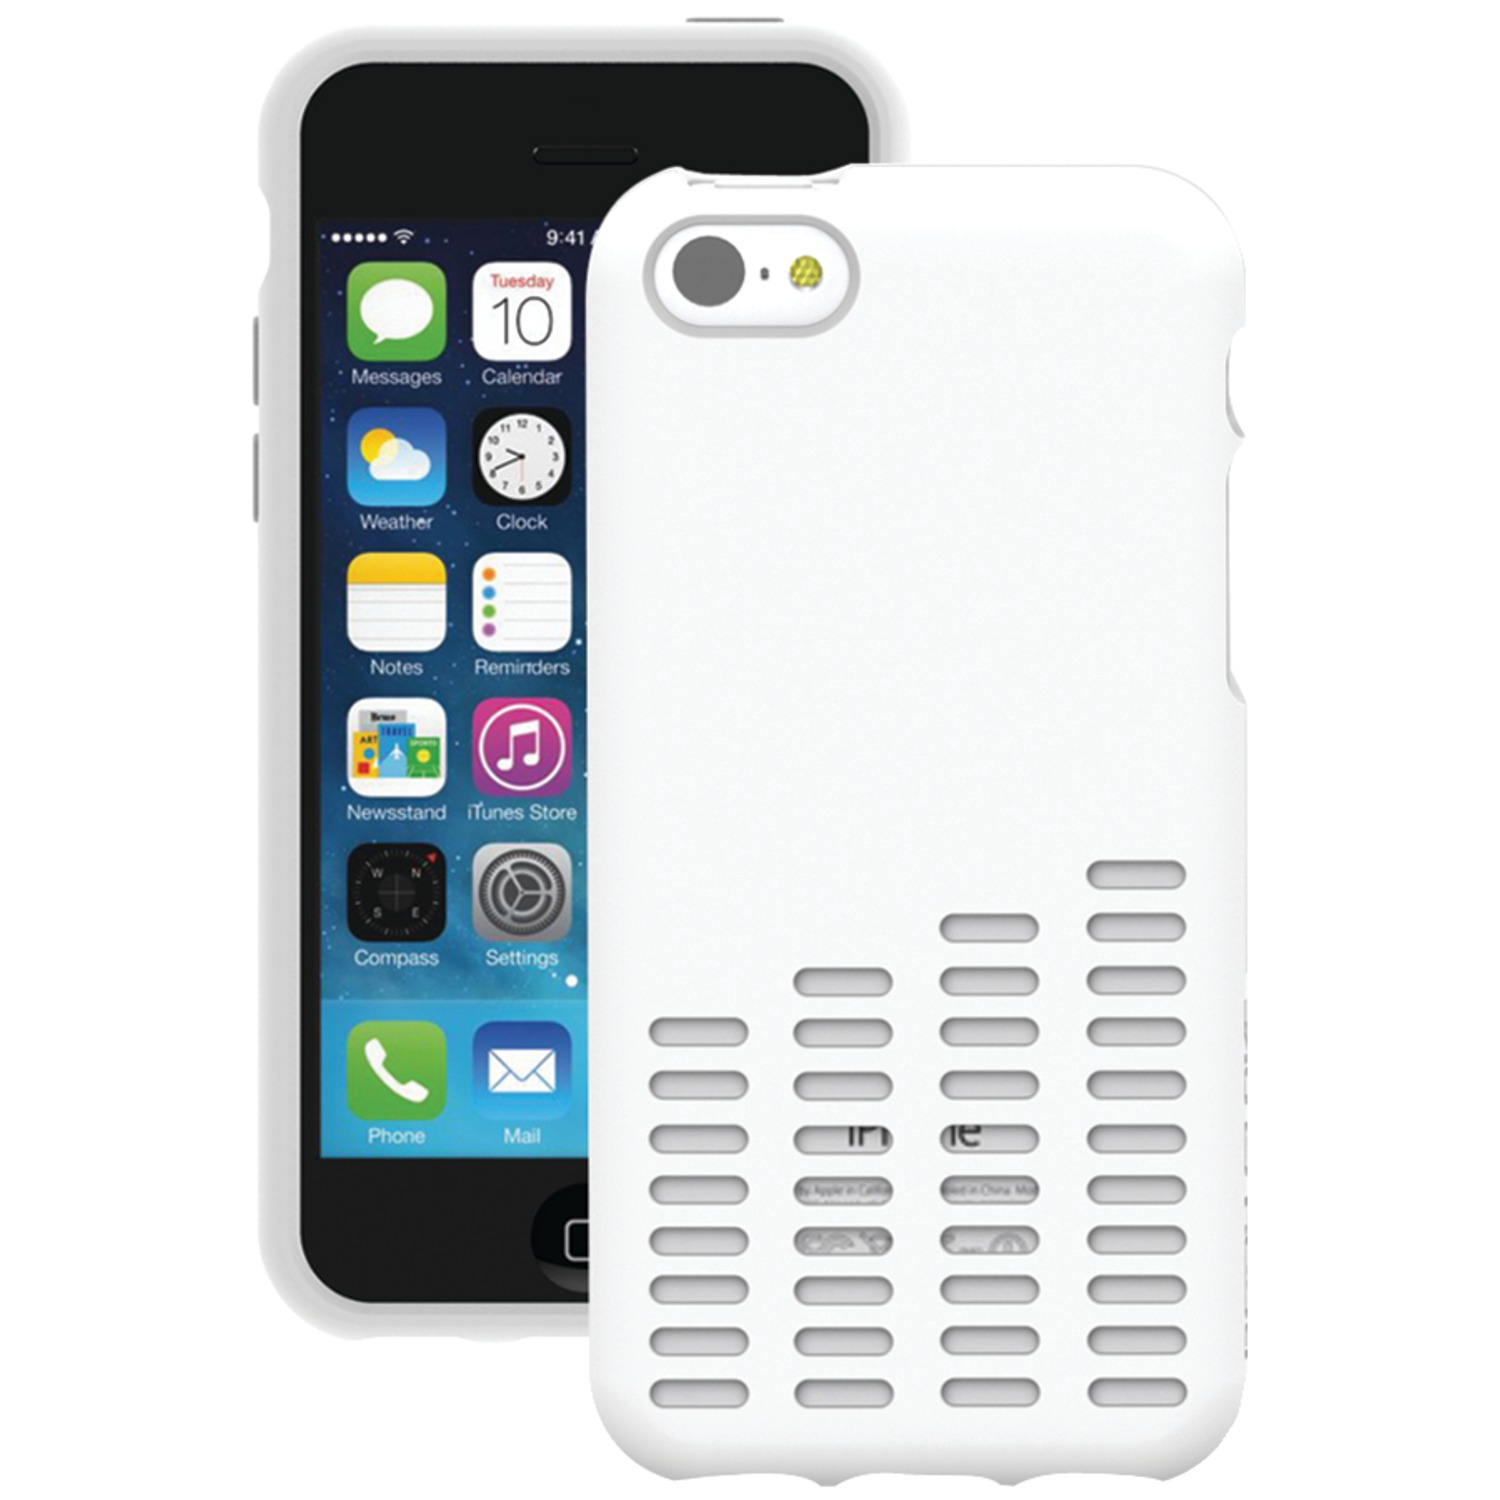 BODY GLOVE 9417205 | iPhone(R) 5c Amp Case (White)